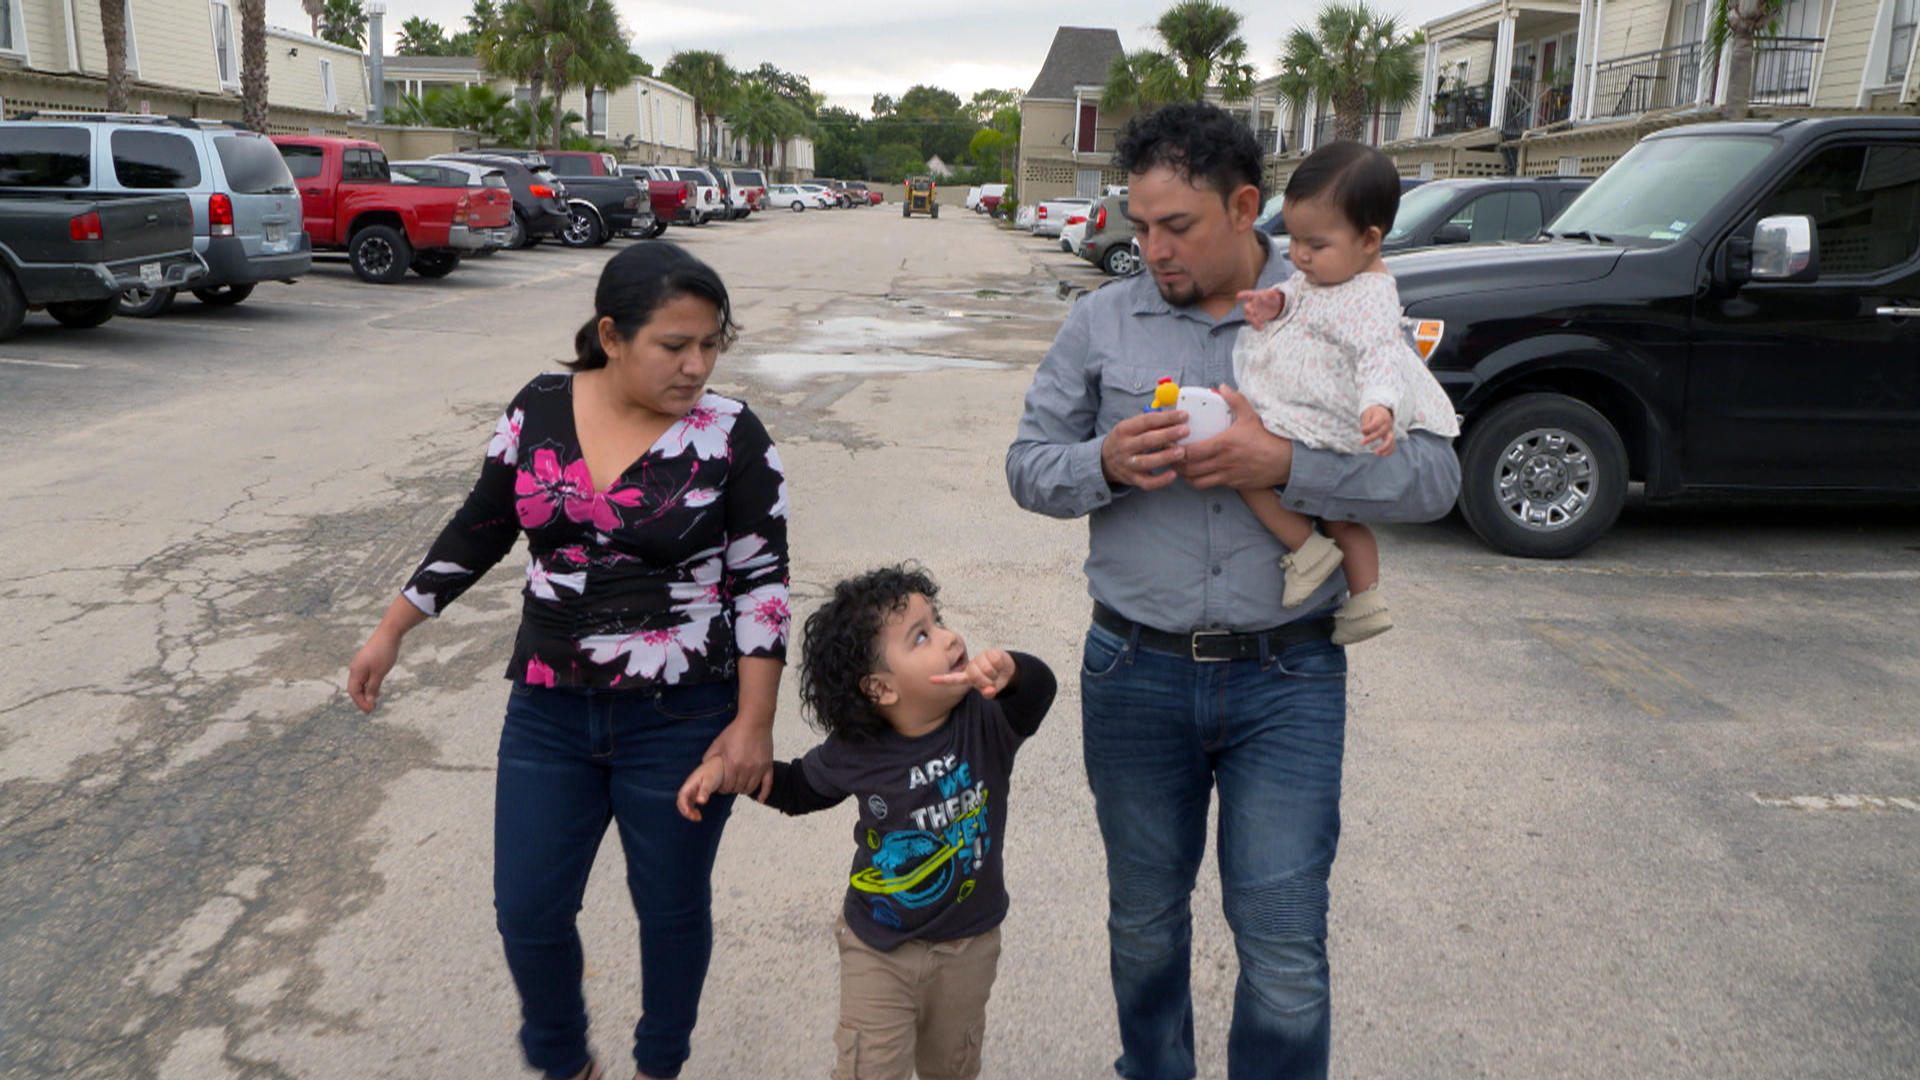 e6a3b85348e The chaos behind Donald Trump's policy of family separation at the border